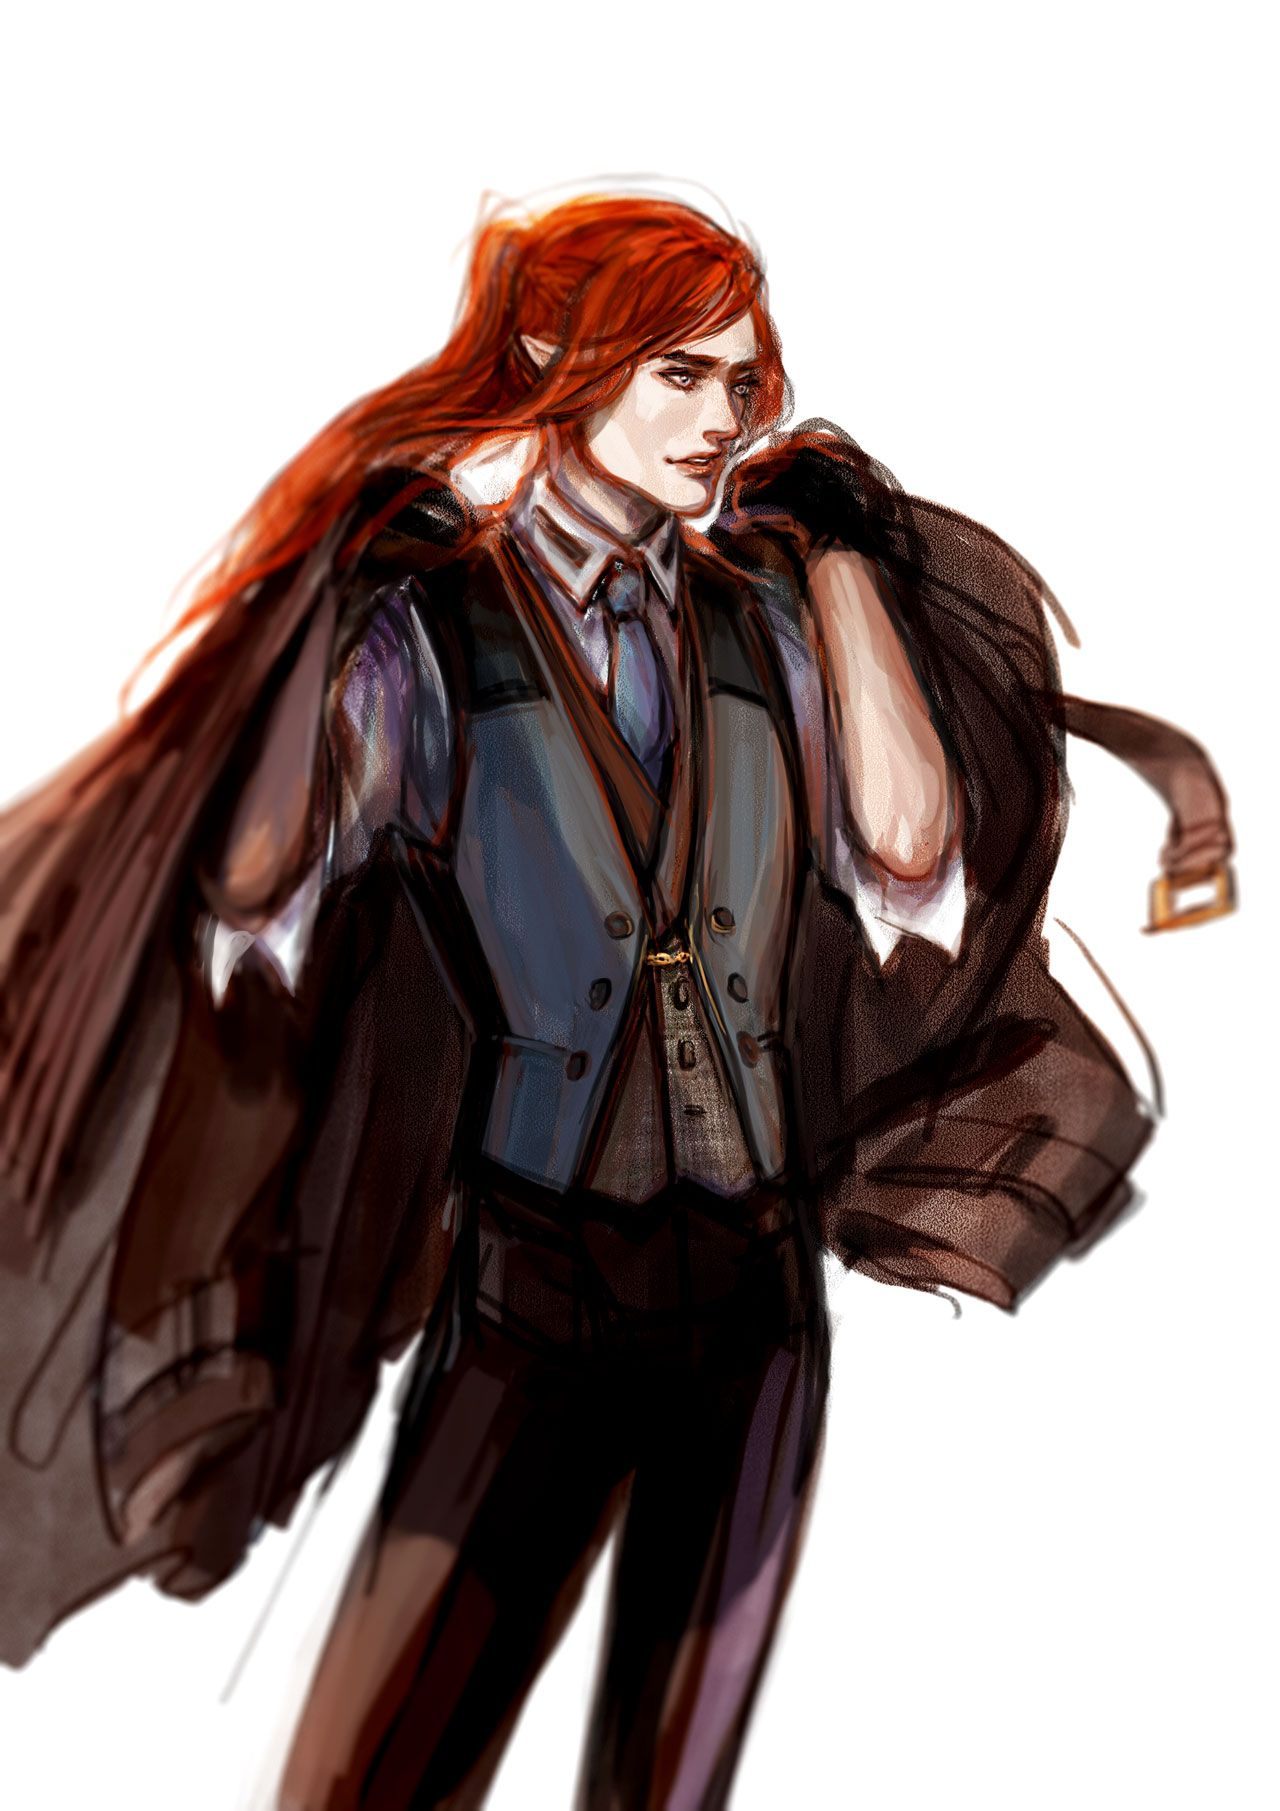 By luaen Modern!Maedhros for maedhrosly. But mostly because I've been wanting to draw Modern AU for such a long time but I didn't think anyone would be interested.silmarillion art blog